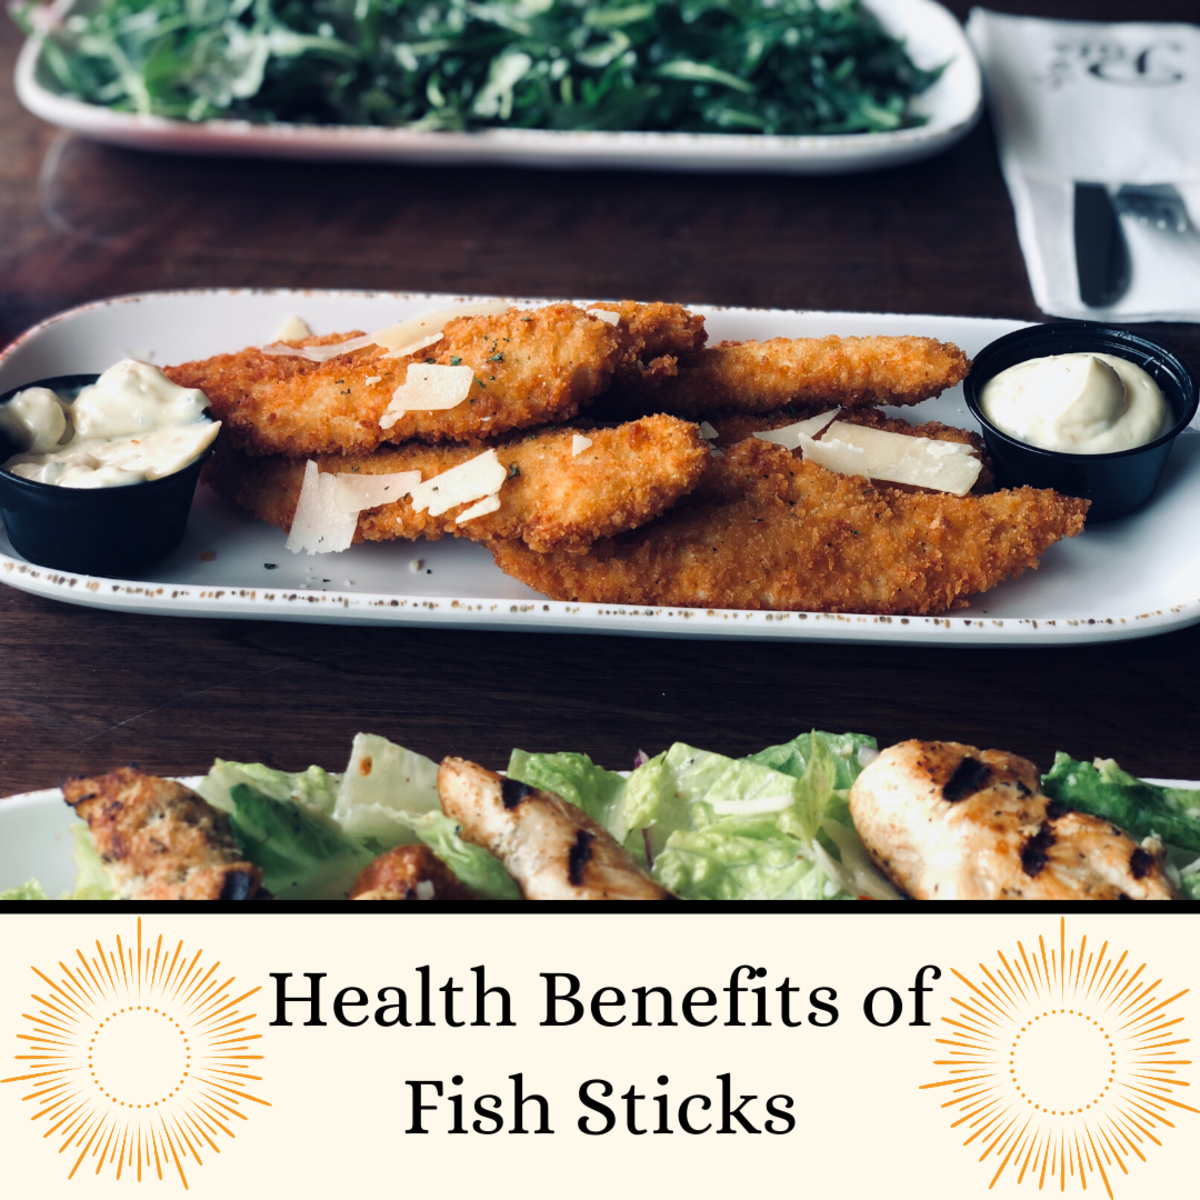 Health Benefits of Fish Sticks (Fish Fingers) With Baked Beans